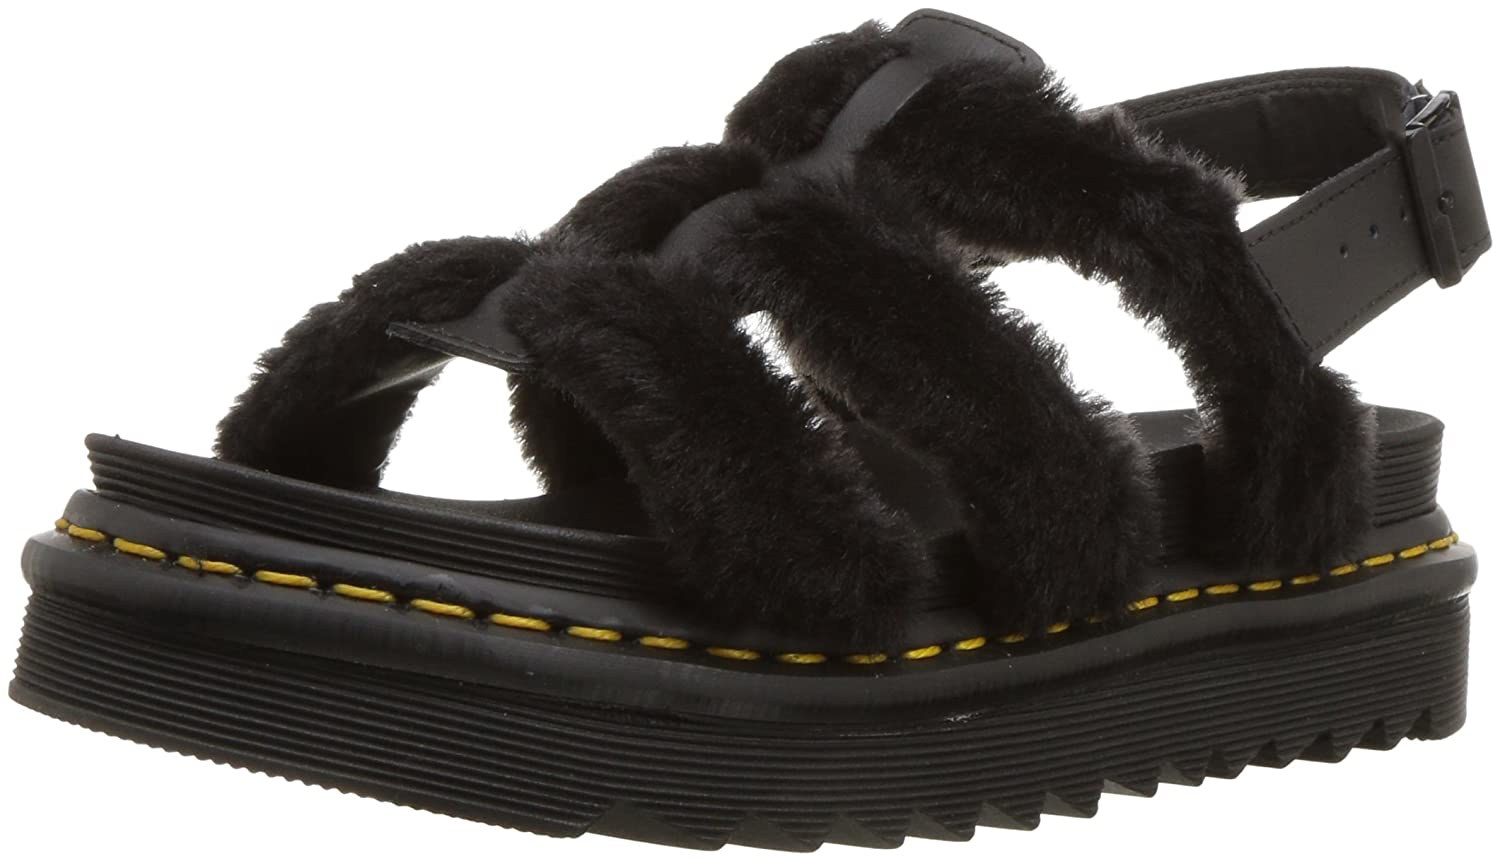 Dr. Martens DMSYELFLBK23801001 Sandals Women: Amazon.co.uk